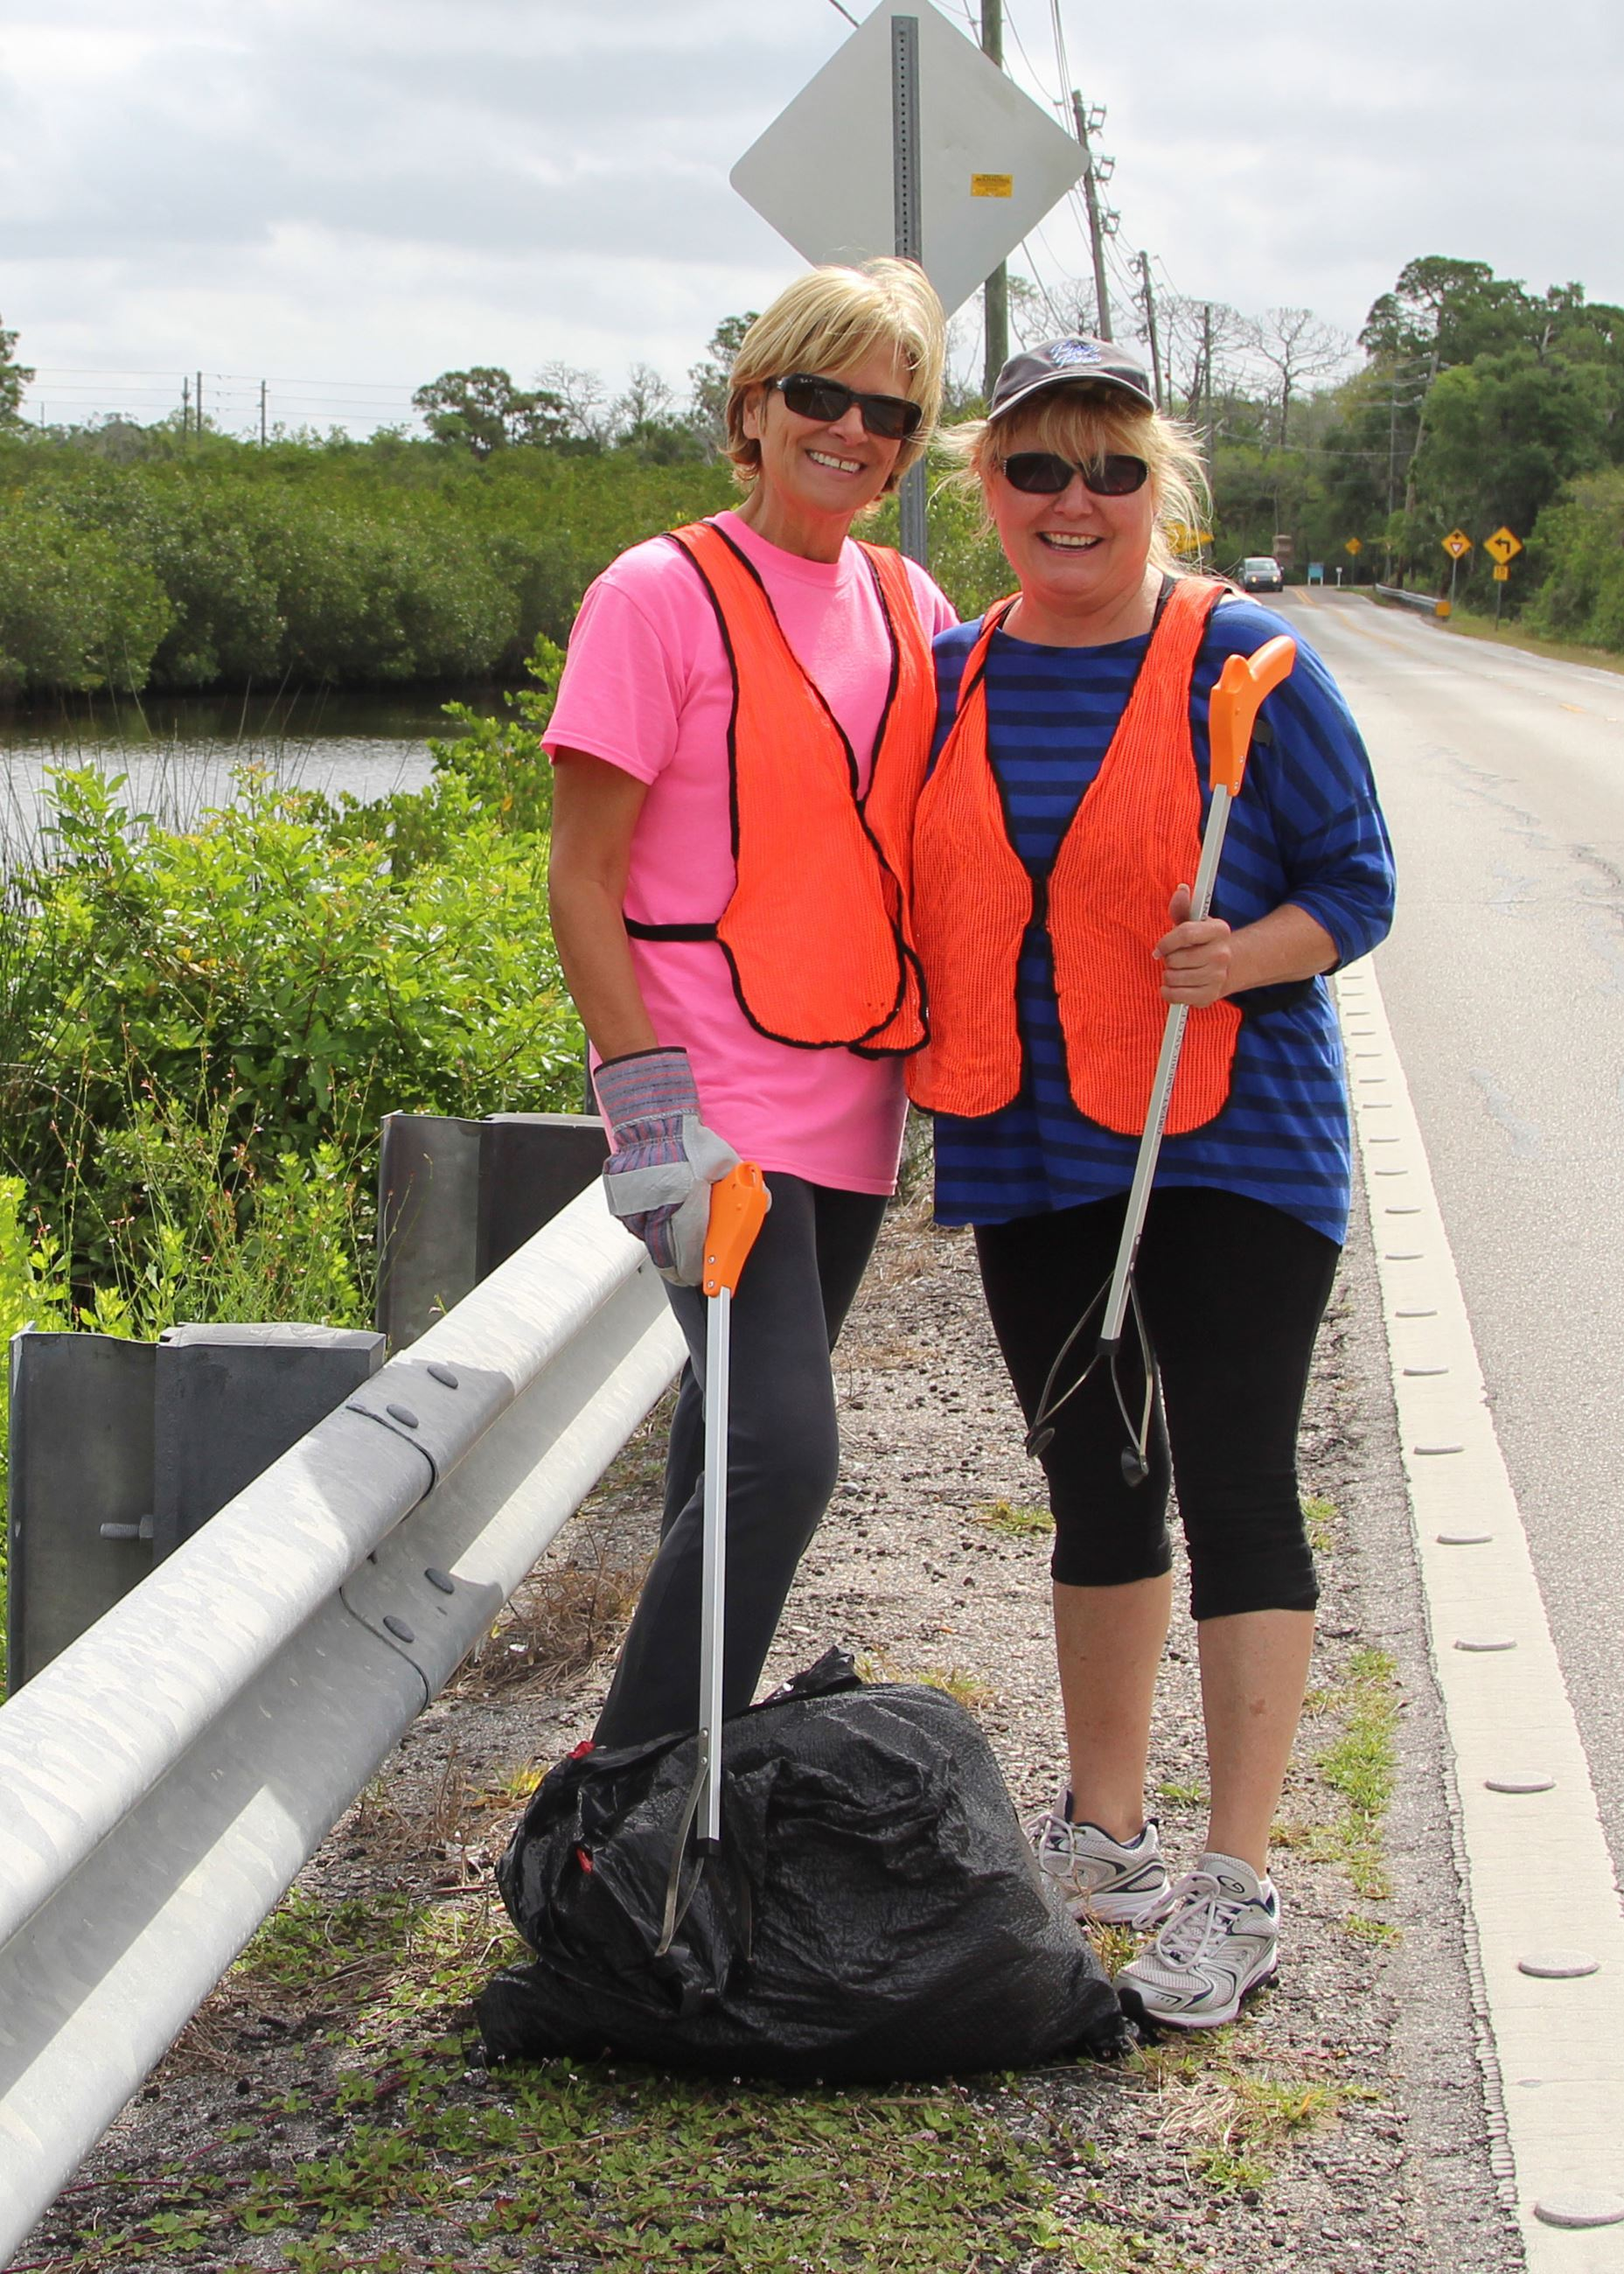 Volunteers clean up roads at Pasco Palms